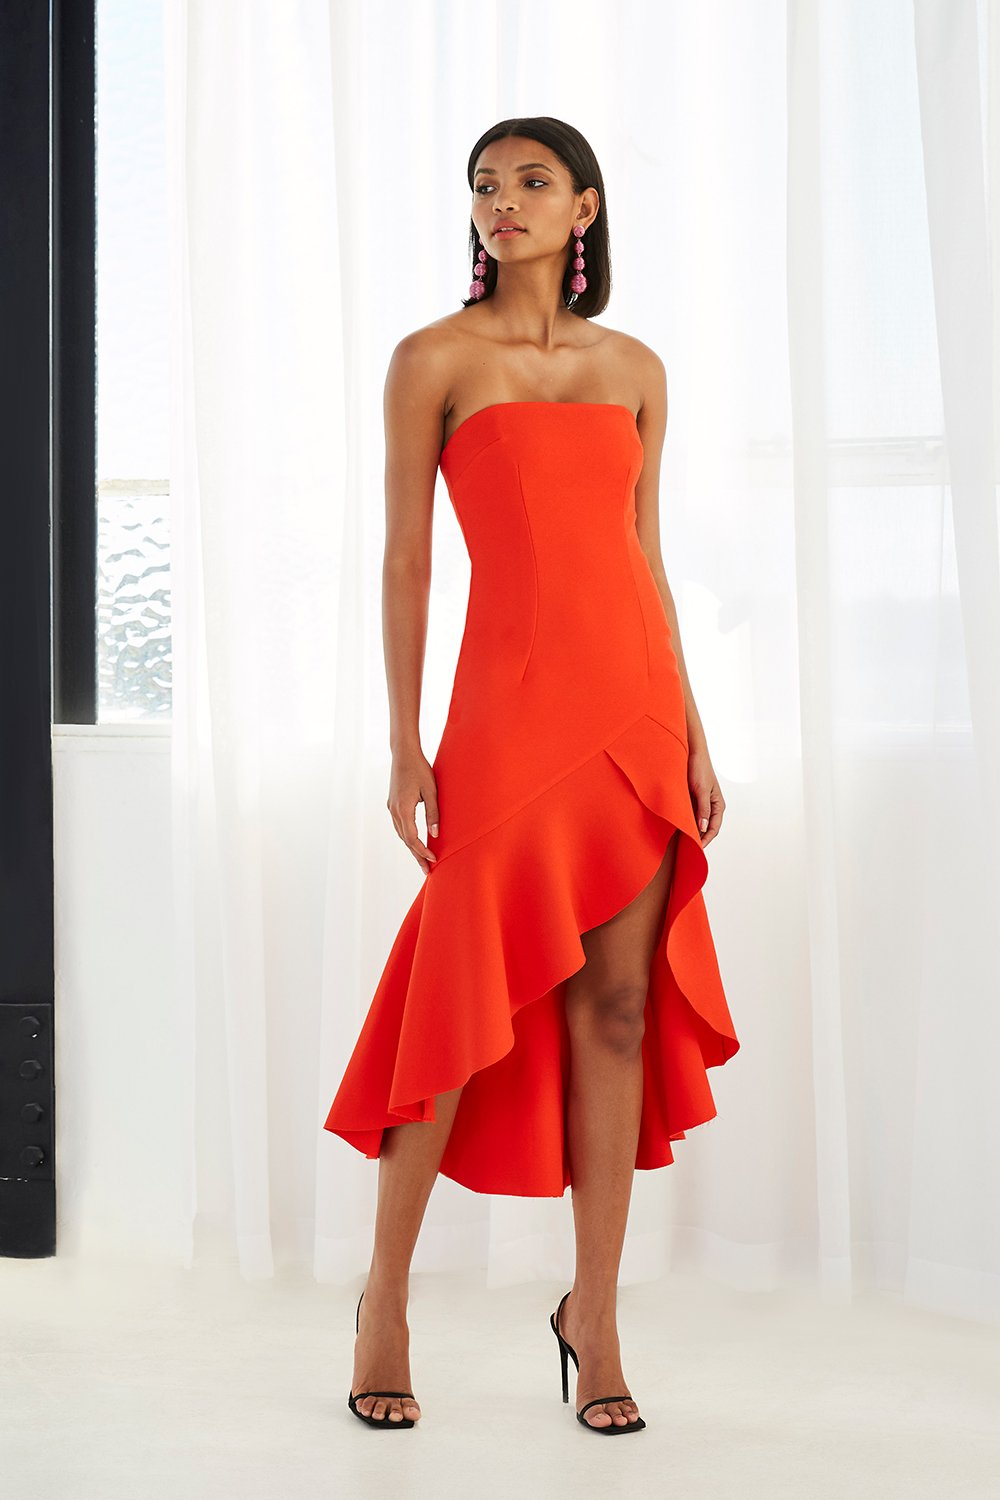 BY JOHNNY STRAPLESS TULIP FRILL GOWN